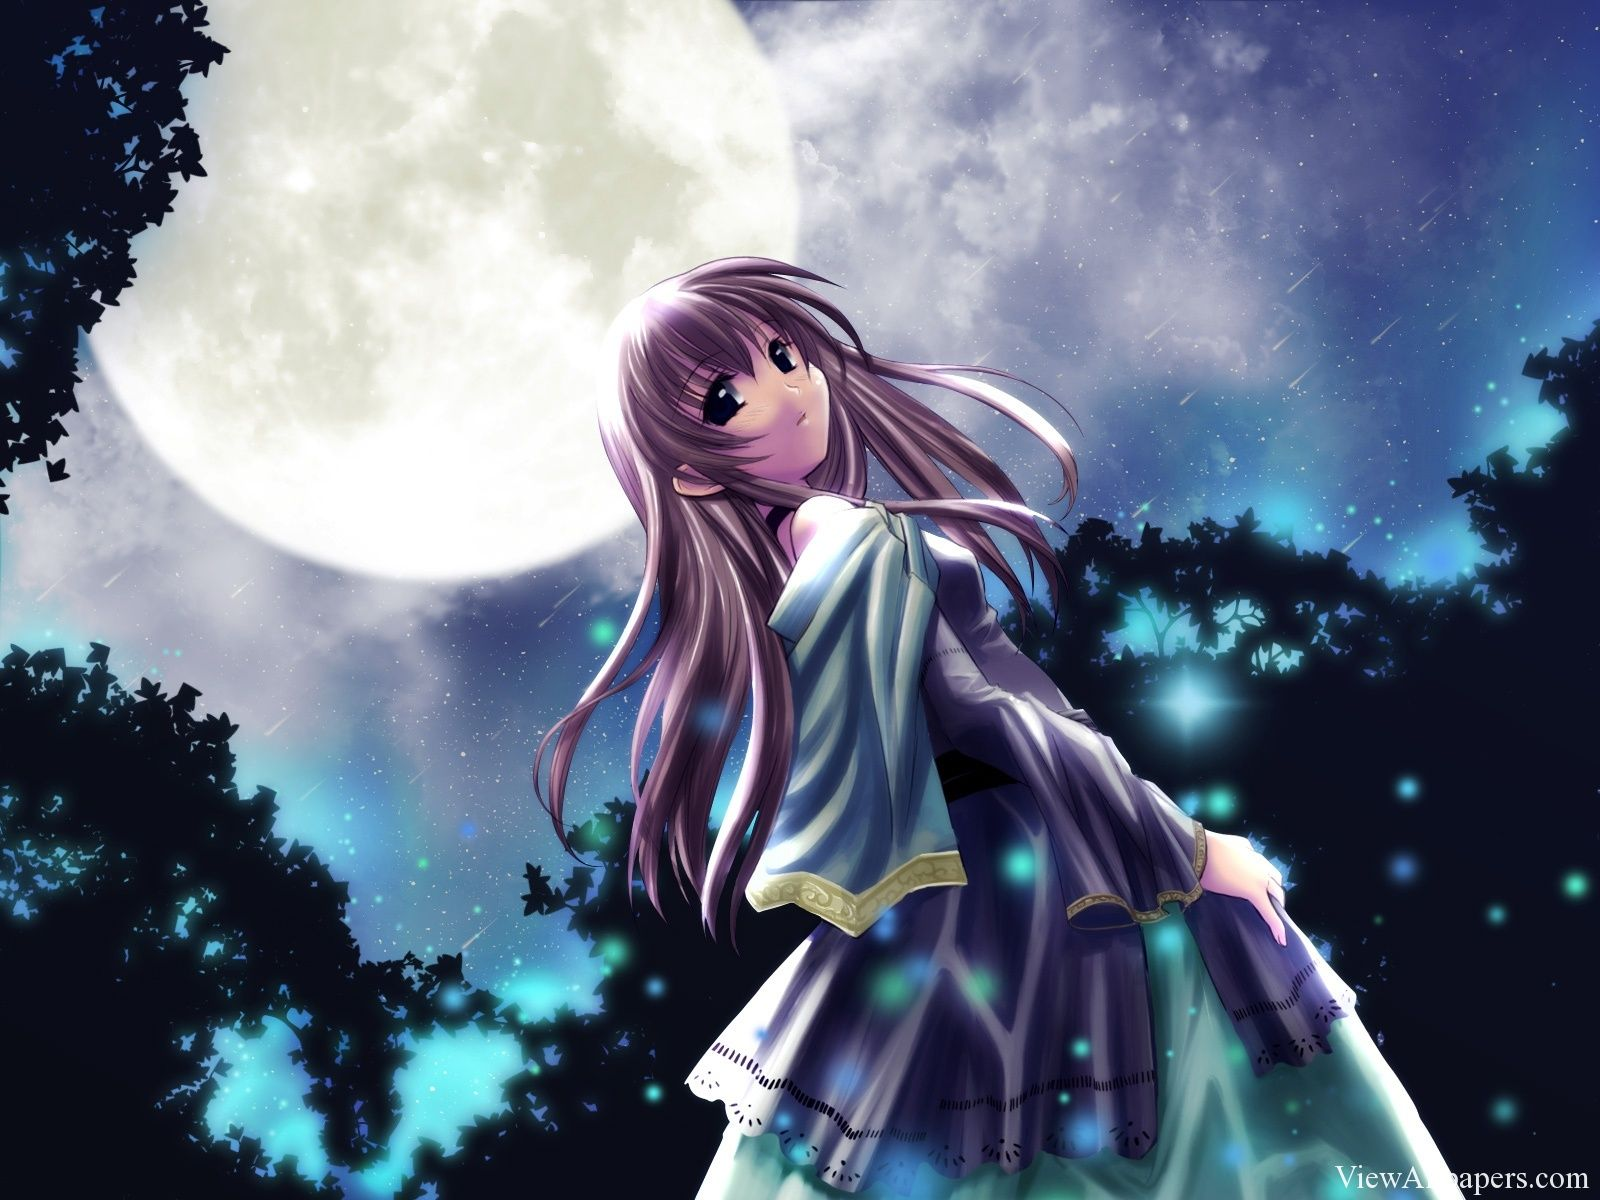 anime princess under moon wallpaper | viewallpapers | pinterest